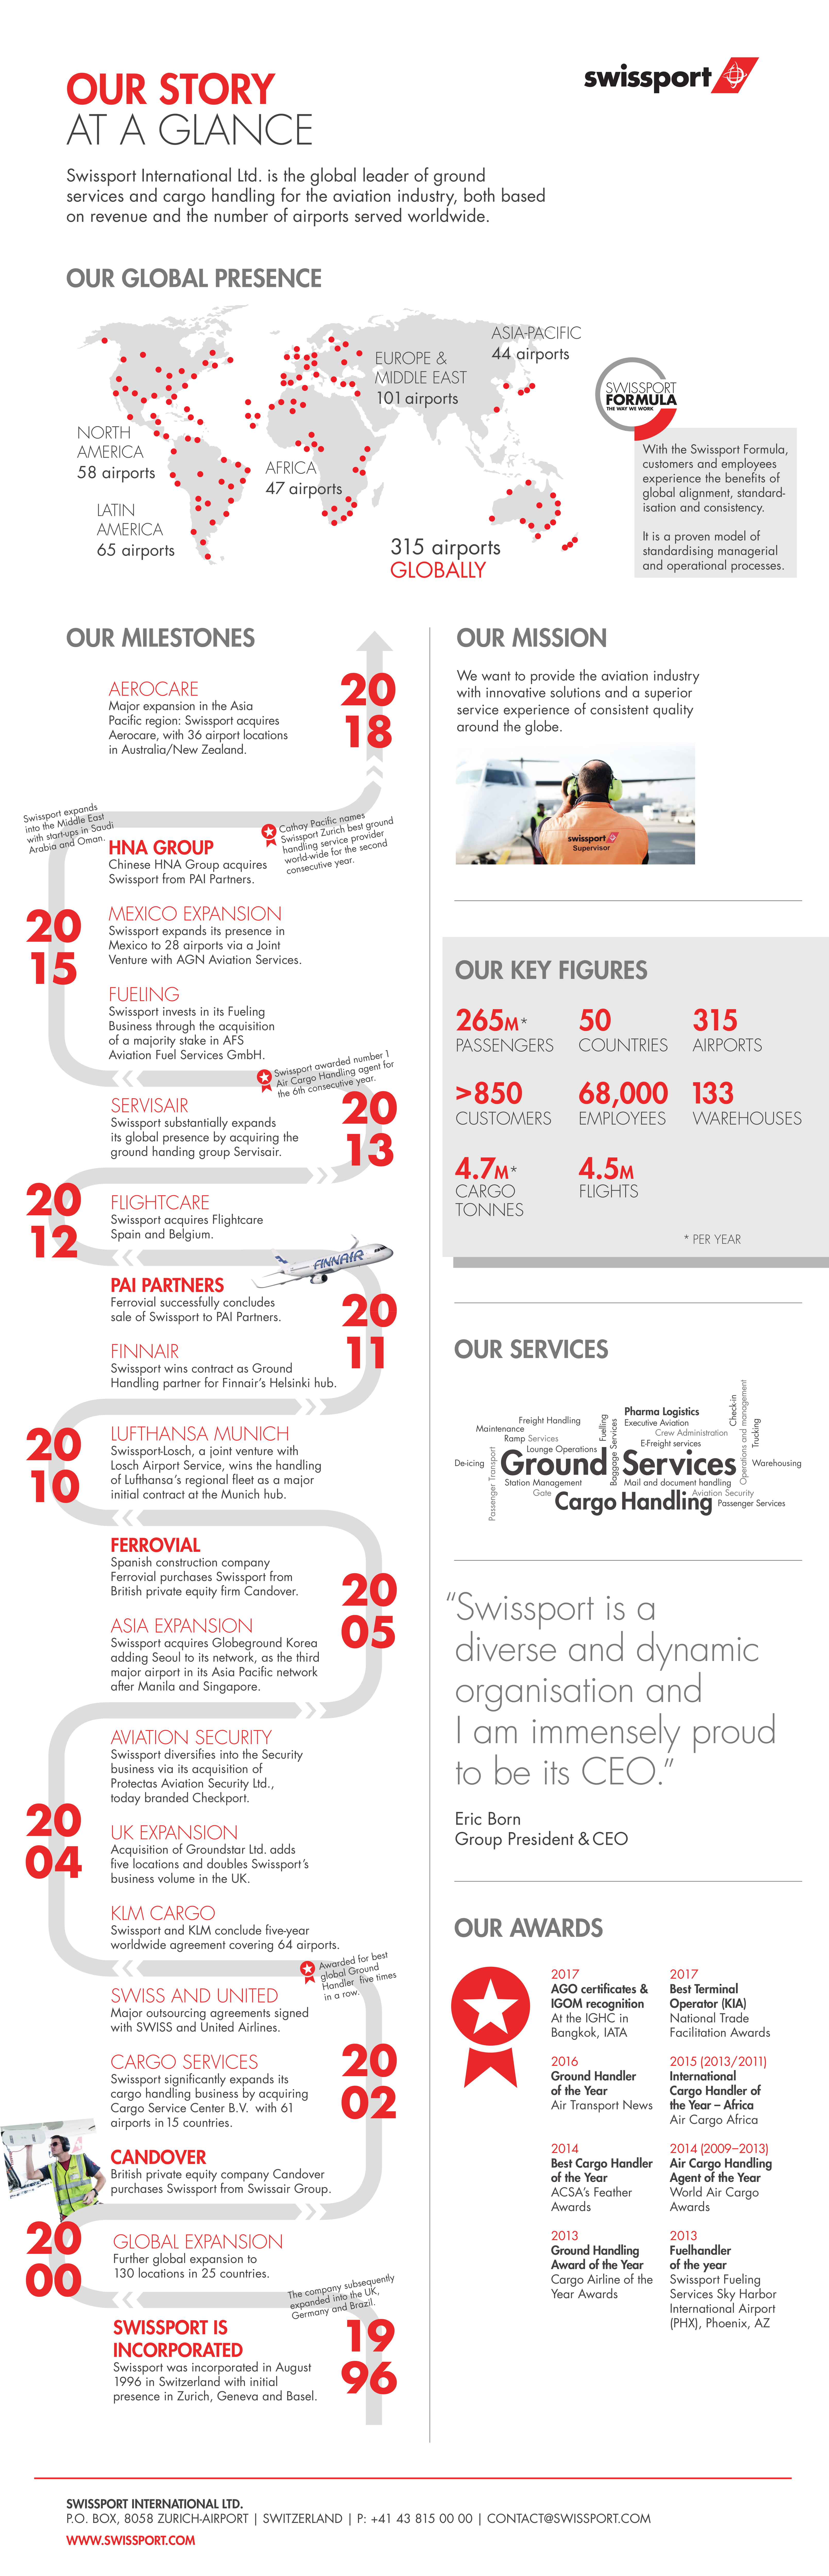 Swissport_Infographic_2018_1-1